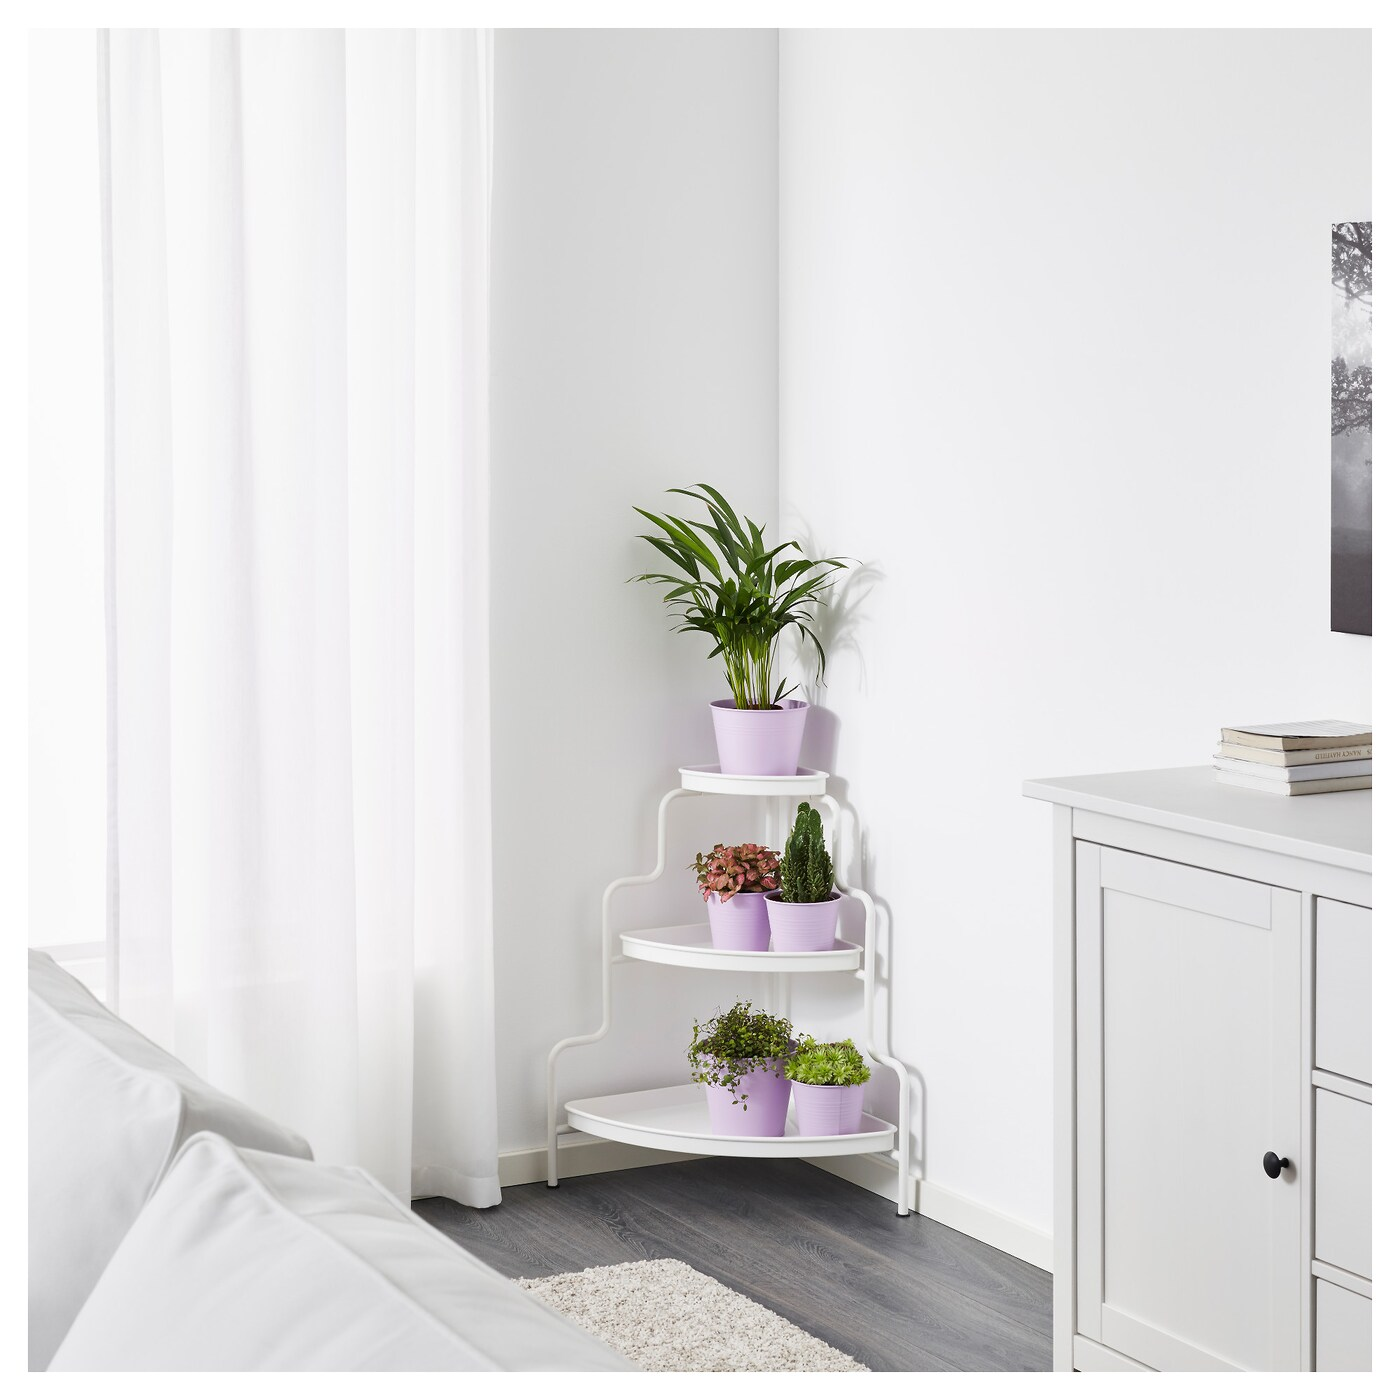 Ikea Socker Plant Stand Socker Plant Stand In/outdoor/white 71 Cm - Ikea